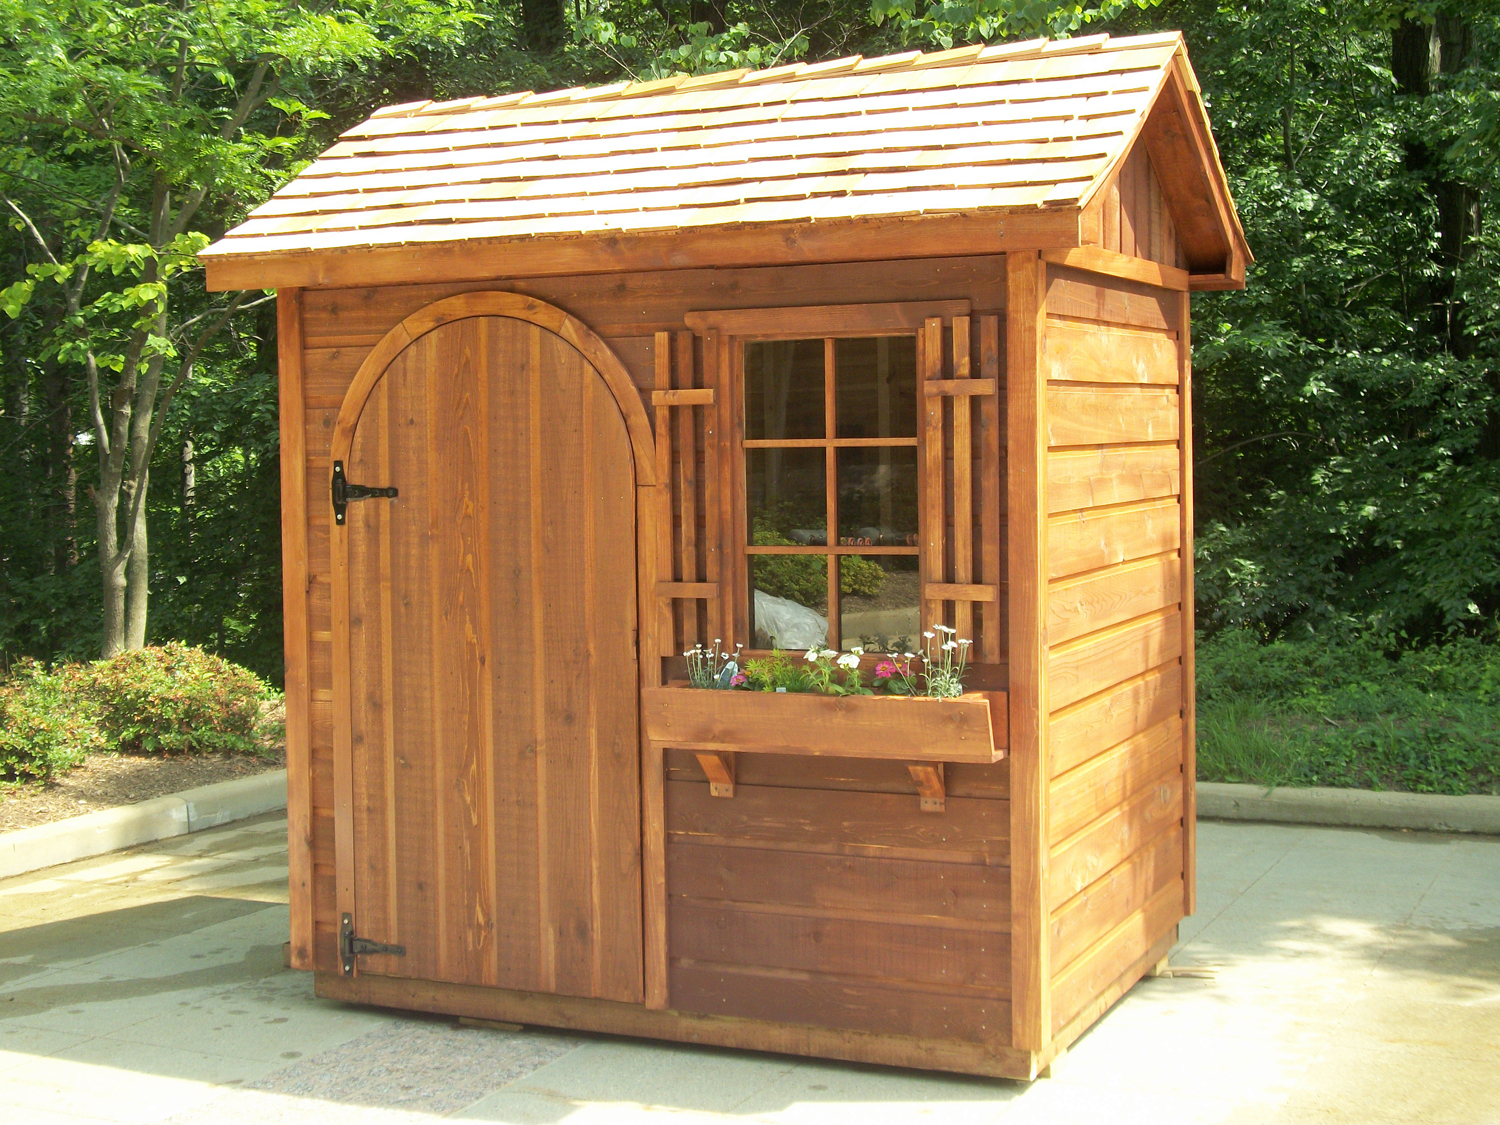 Garden shed design and plans shed blueprints for Storage building designs